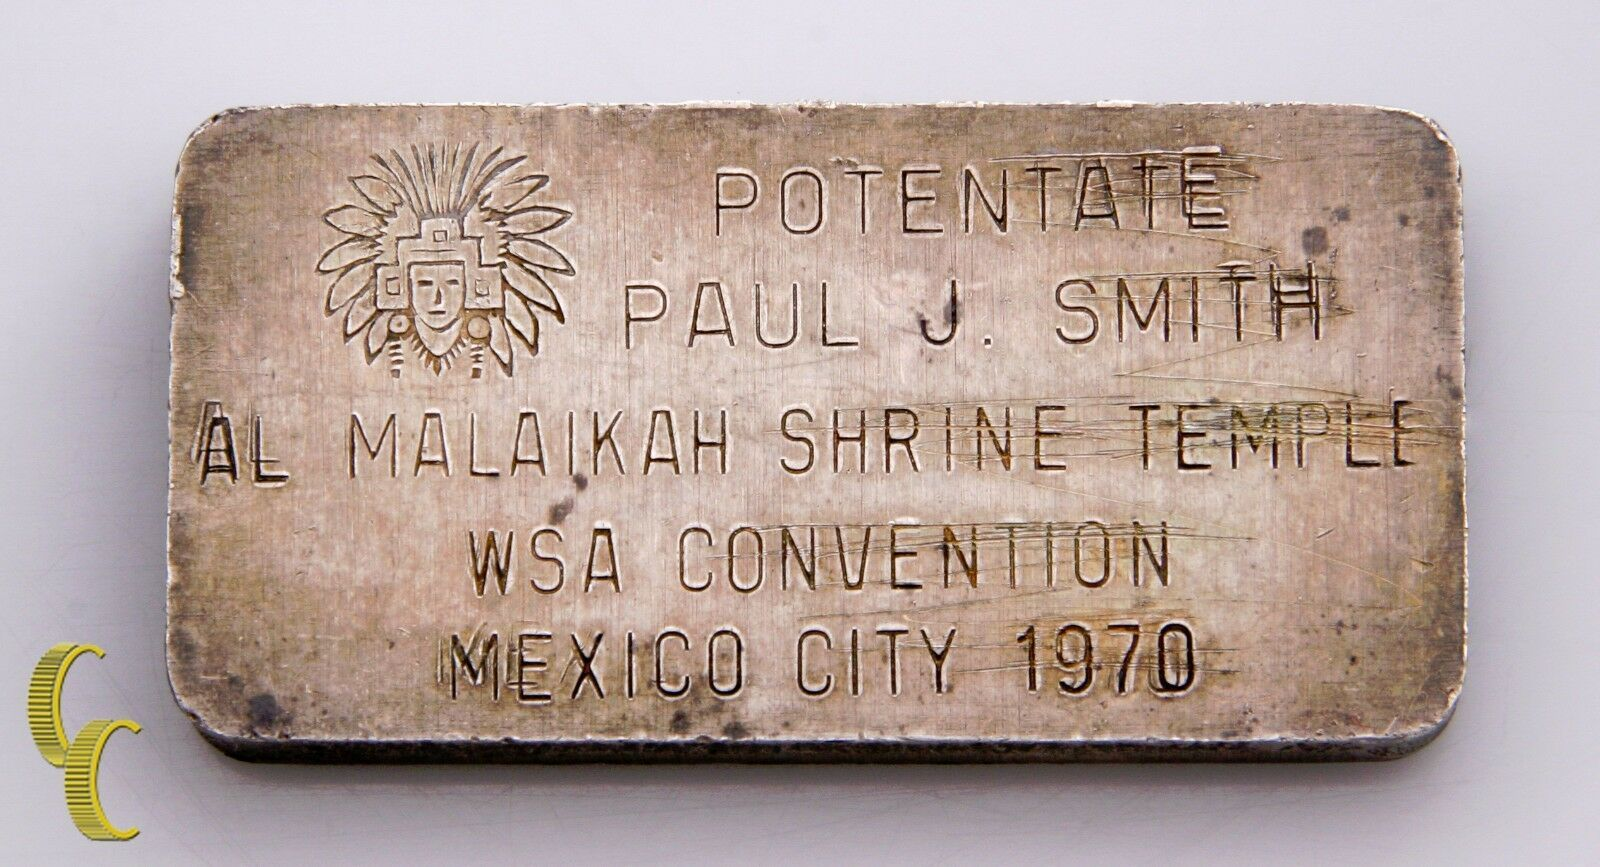 3 ML .999 + Barre Argent From The Al Malaikah Shrine Temple Wsa Convention 1970